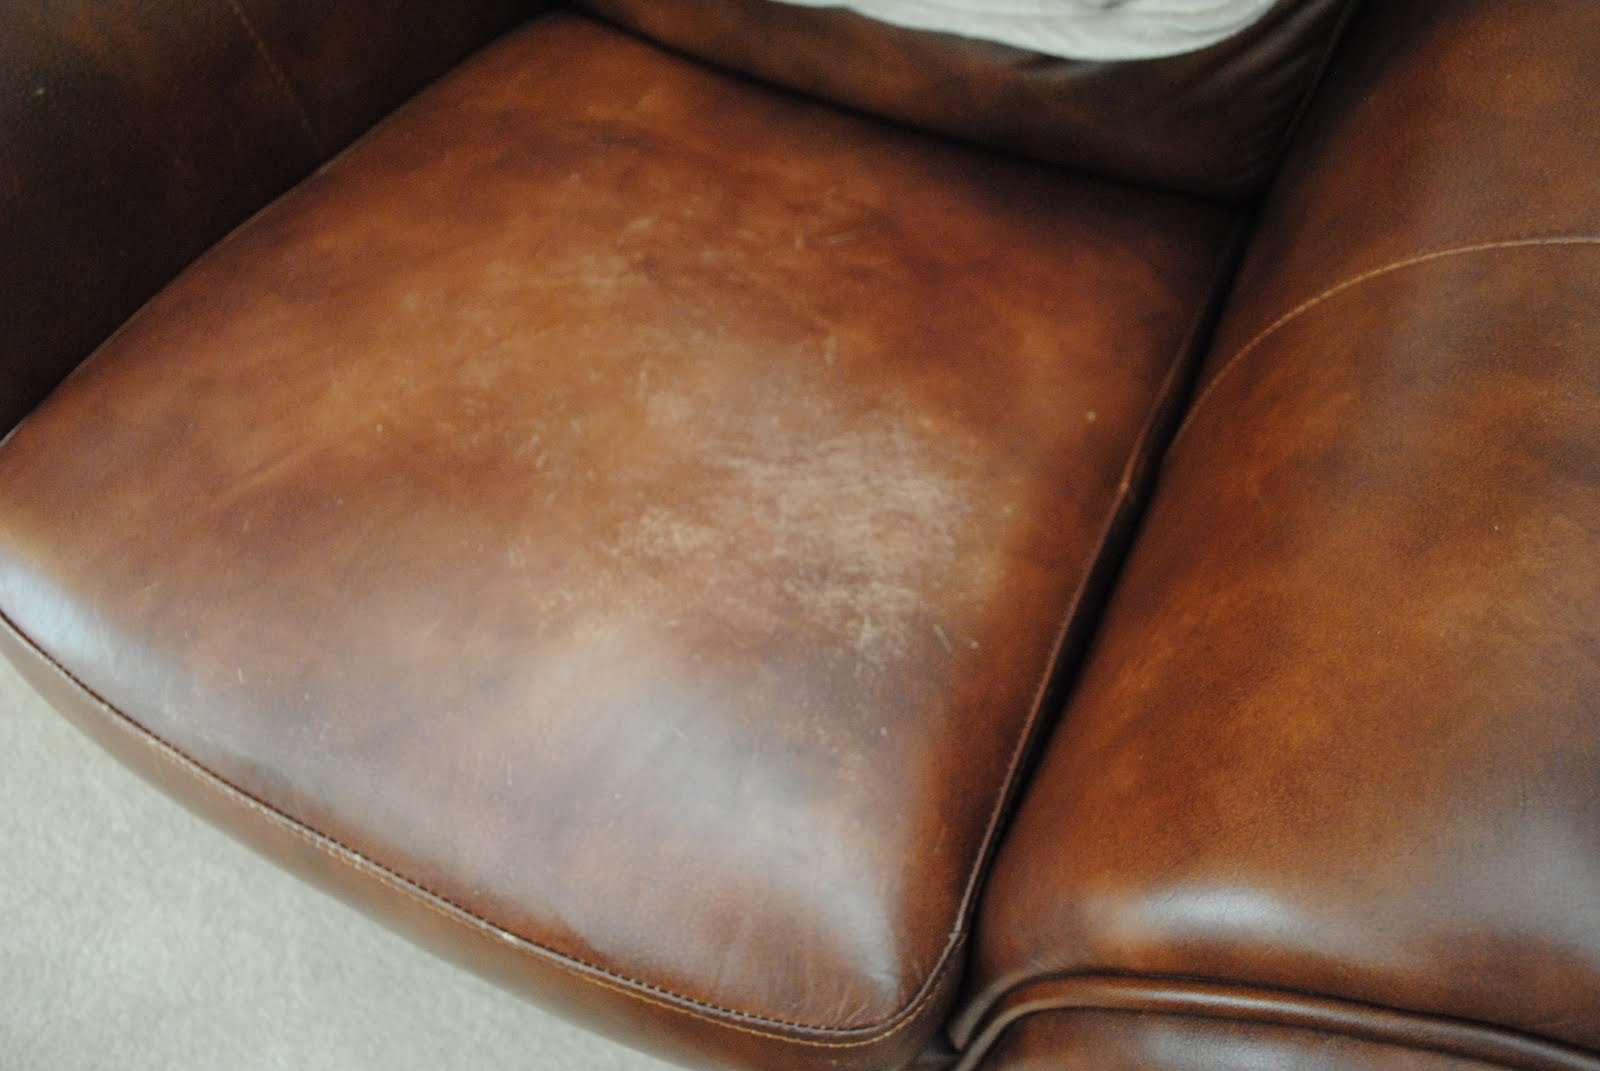 How To Clean A Leather Sofa With Saddle Soap